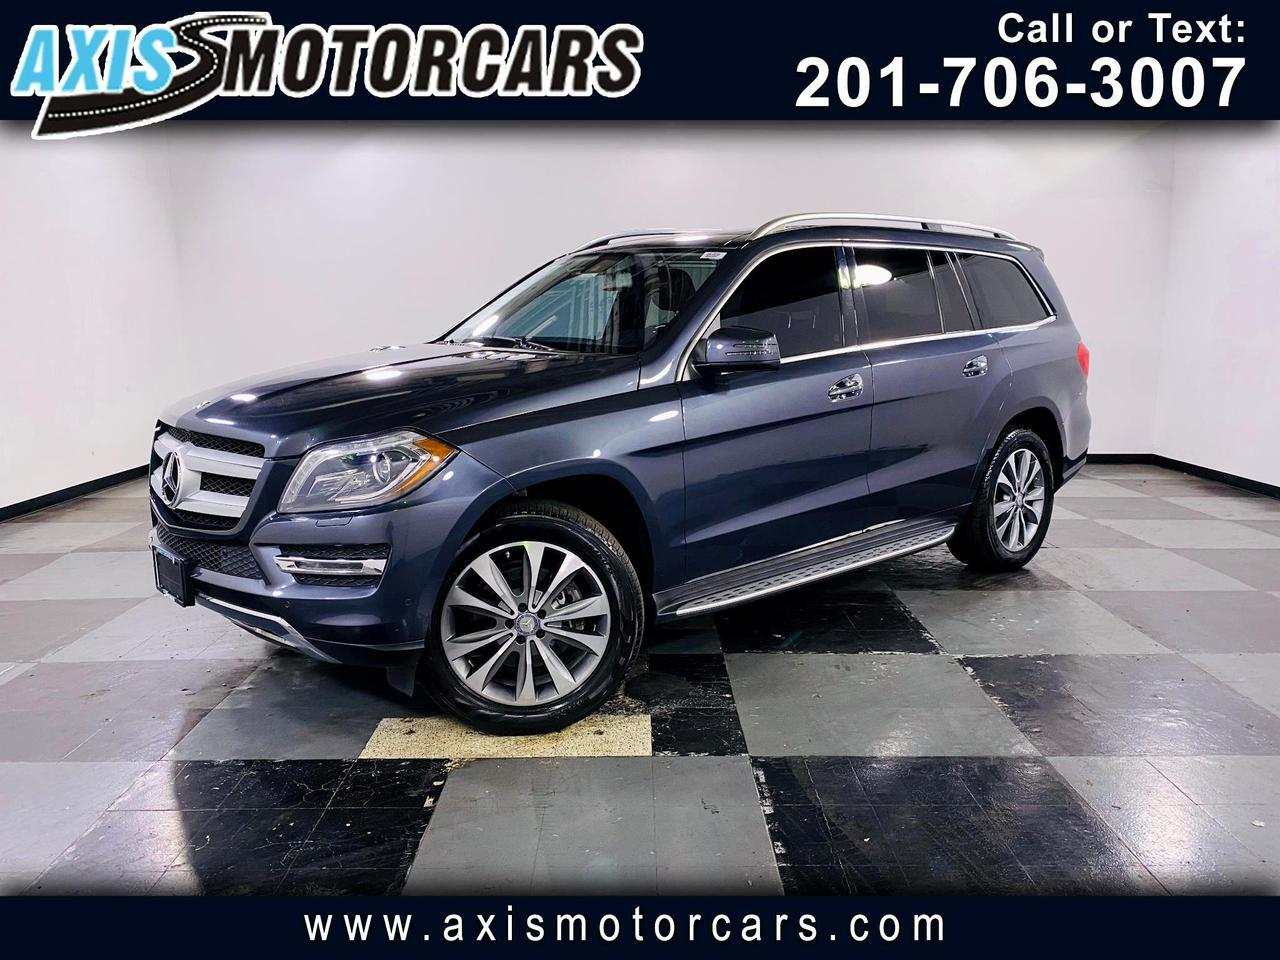 2015 Mercedes-Benz GL-Class 450 4MATIC w/Backup Camera360 Harman Kardon Naviga Jersey City NJ